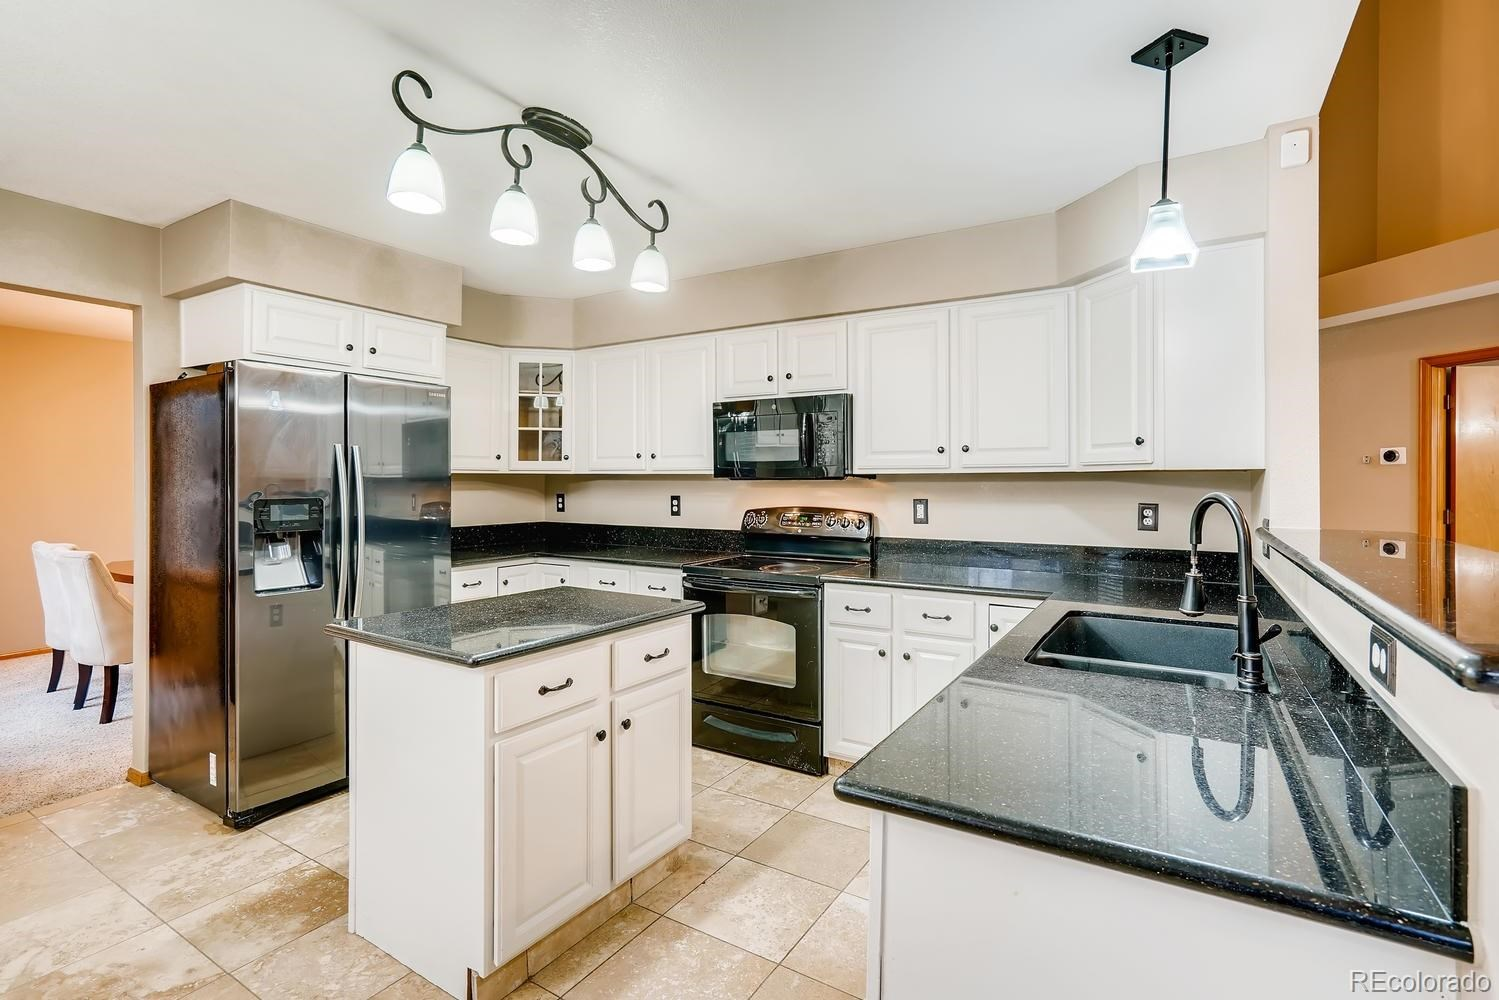 MLS# 6431155 - 9 - 6773 W 98th Circle, Westminster, CO 80021